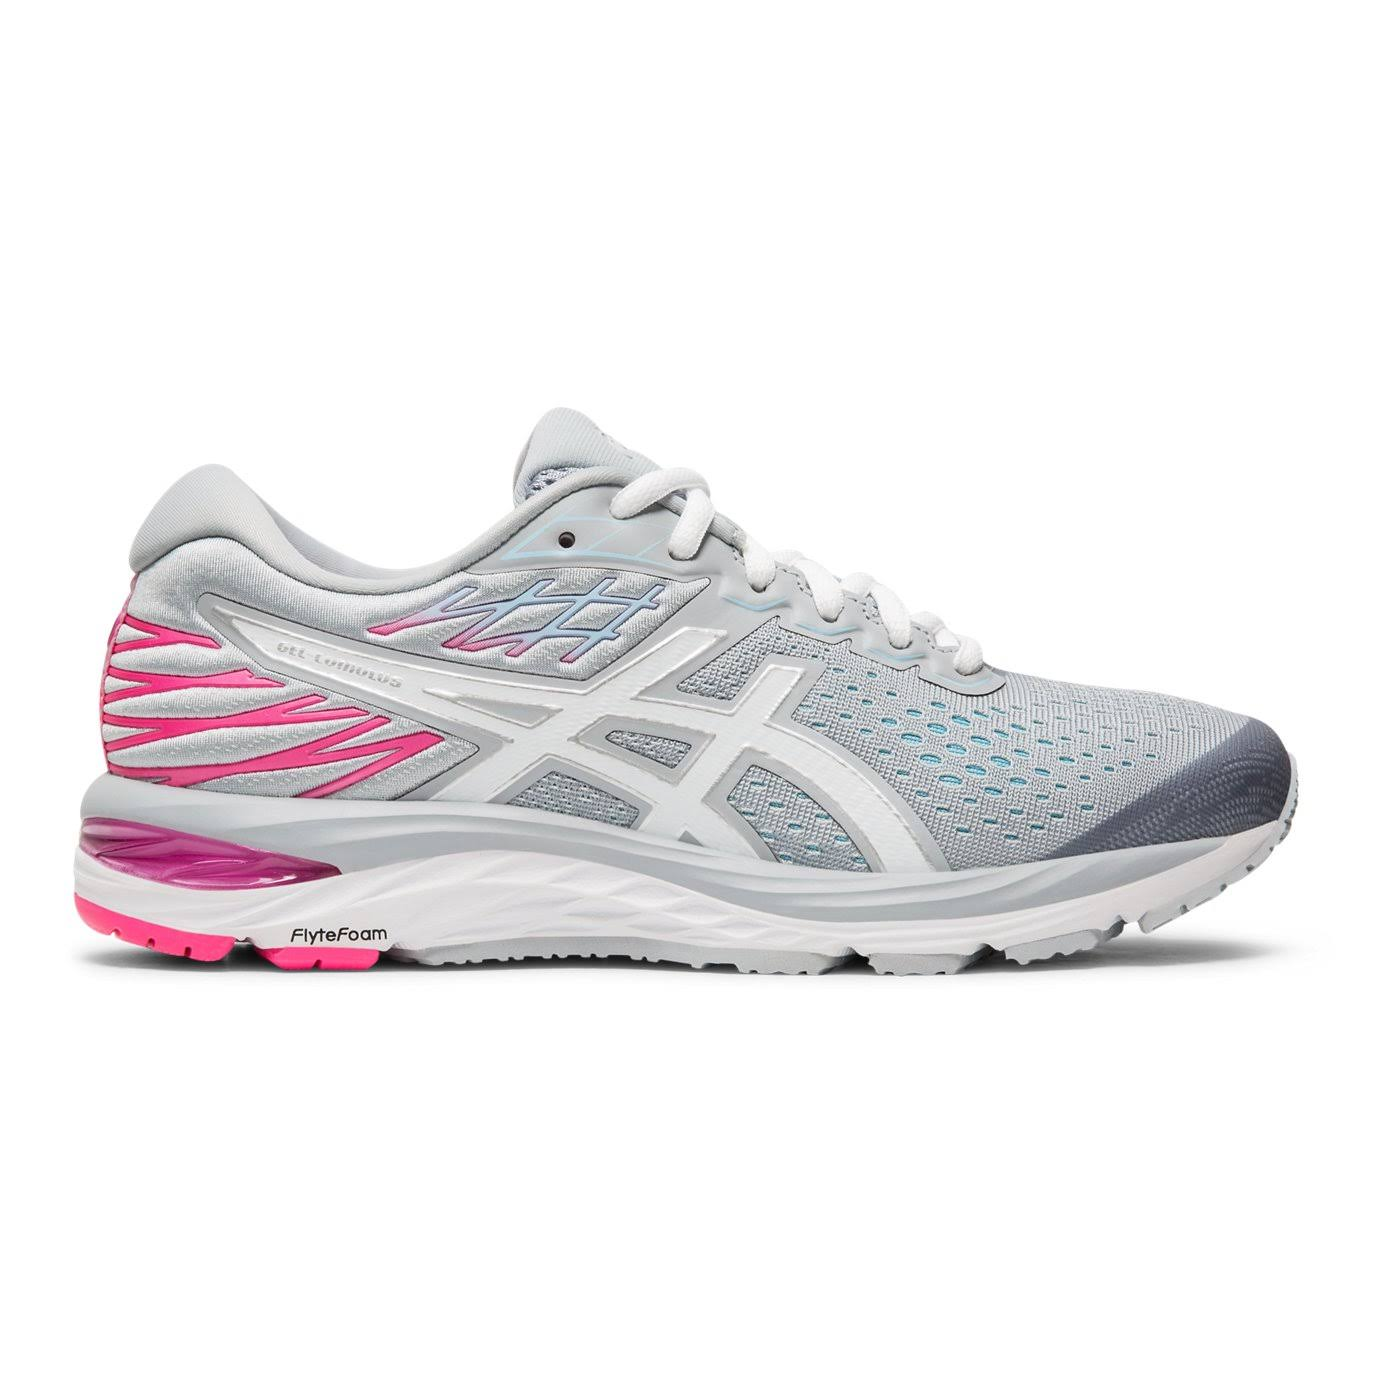 Asics GEL-Cumulus 21 Shoe - Women's Running